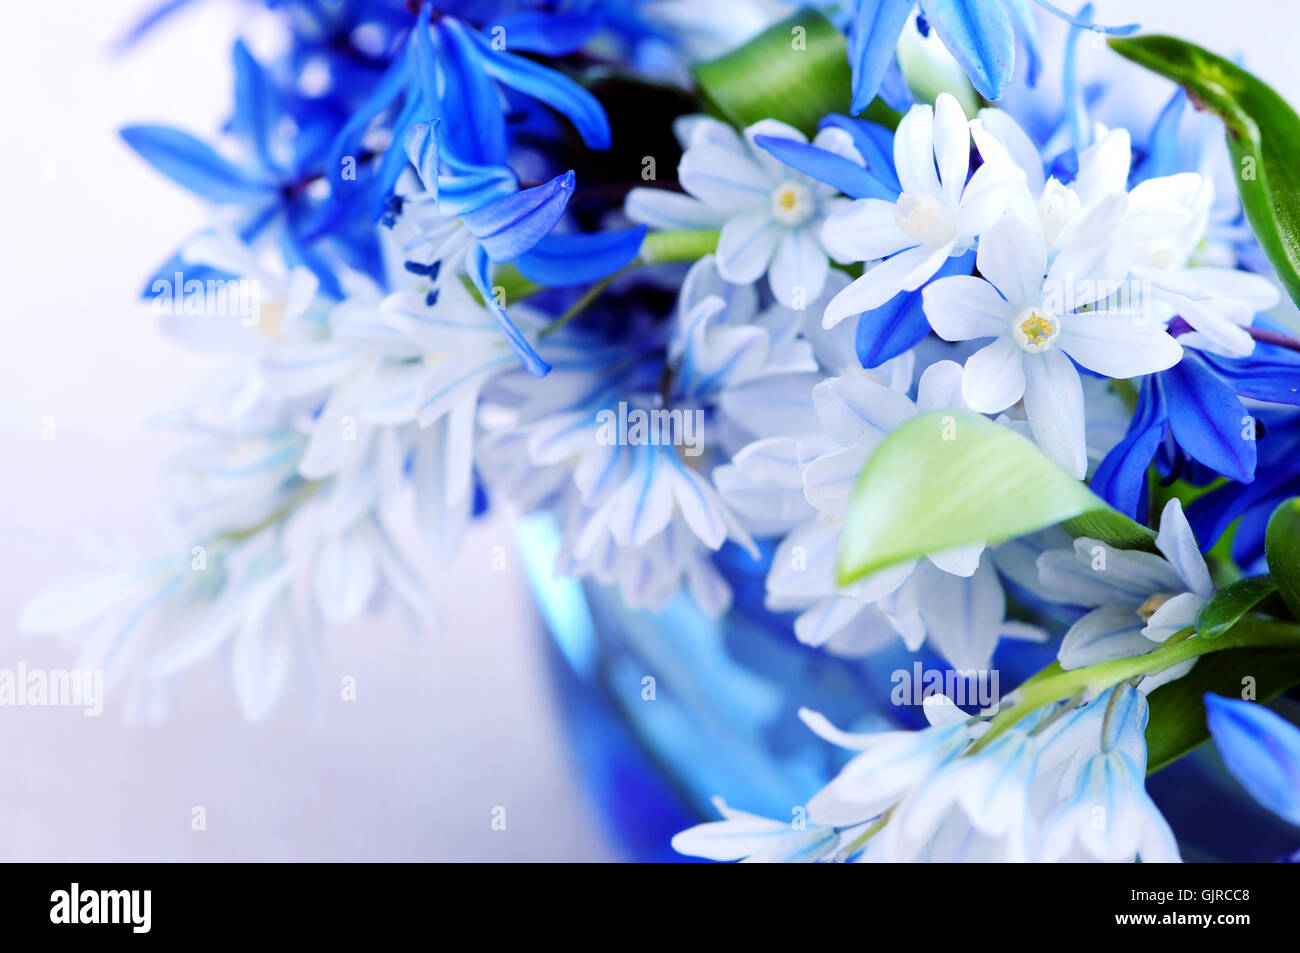 Cocaine flower stock photos cocaine flower stock images alamy blue flower flowers stock image izmirmasajfo Image collections